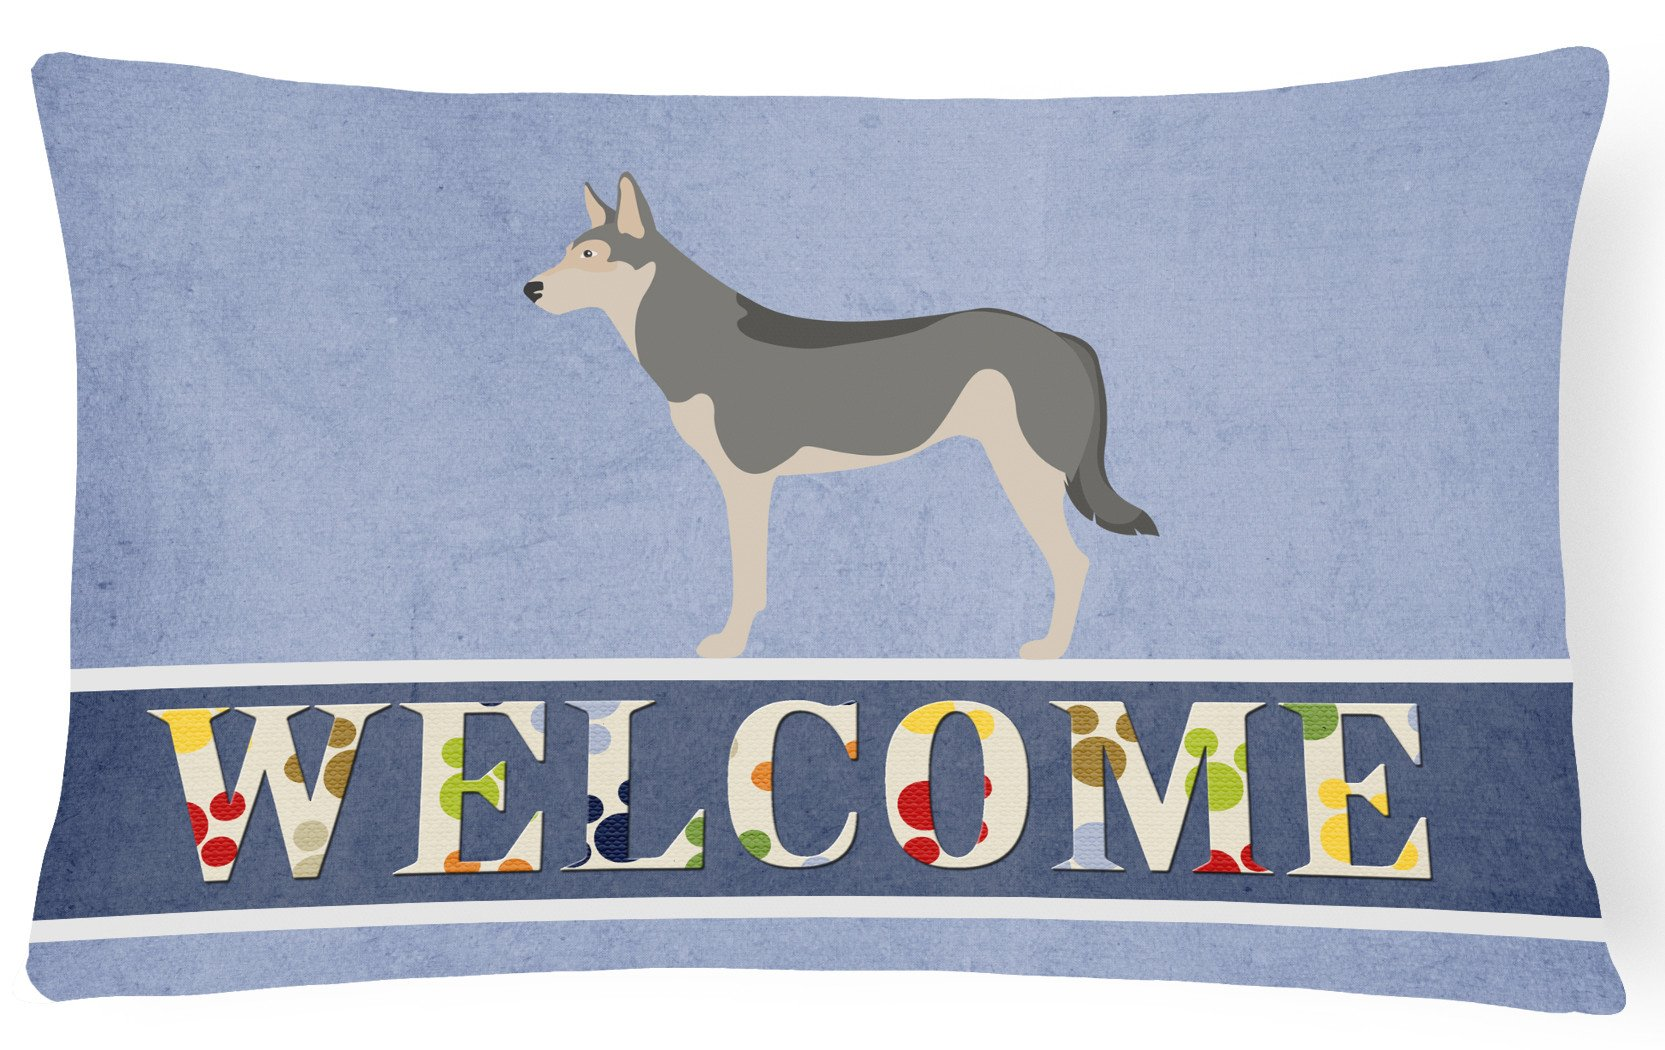 Saarloos Wolfdog Welcome Canvas Fabric Decorative Pillow BB8296PW1216 by Caroline's Treasures